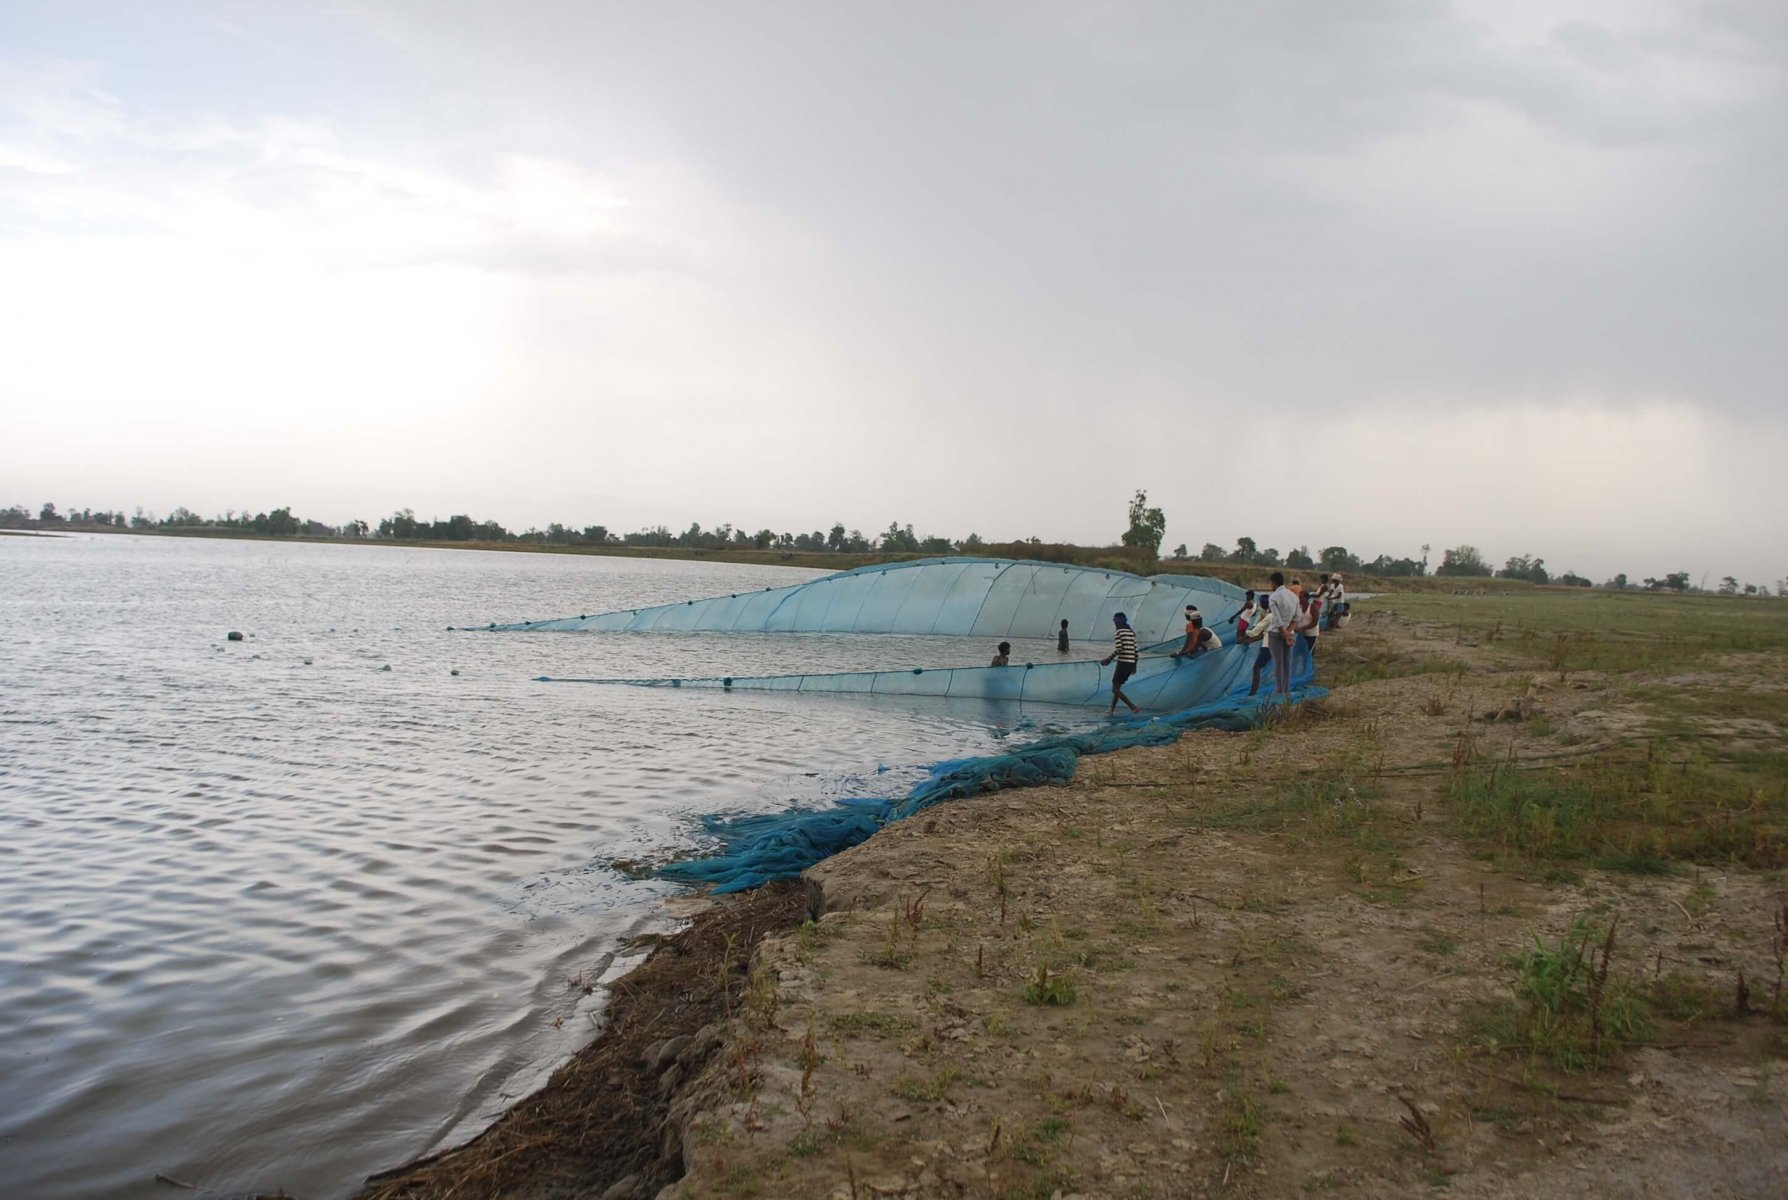 The team will be working to reduce the threat of gillnet fishing © Gopal Khanal